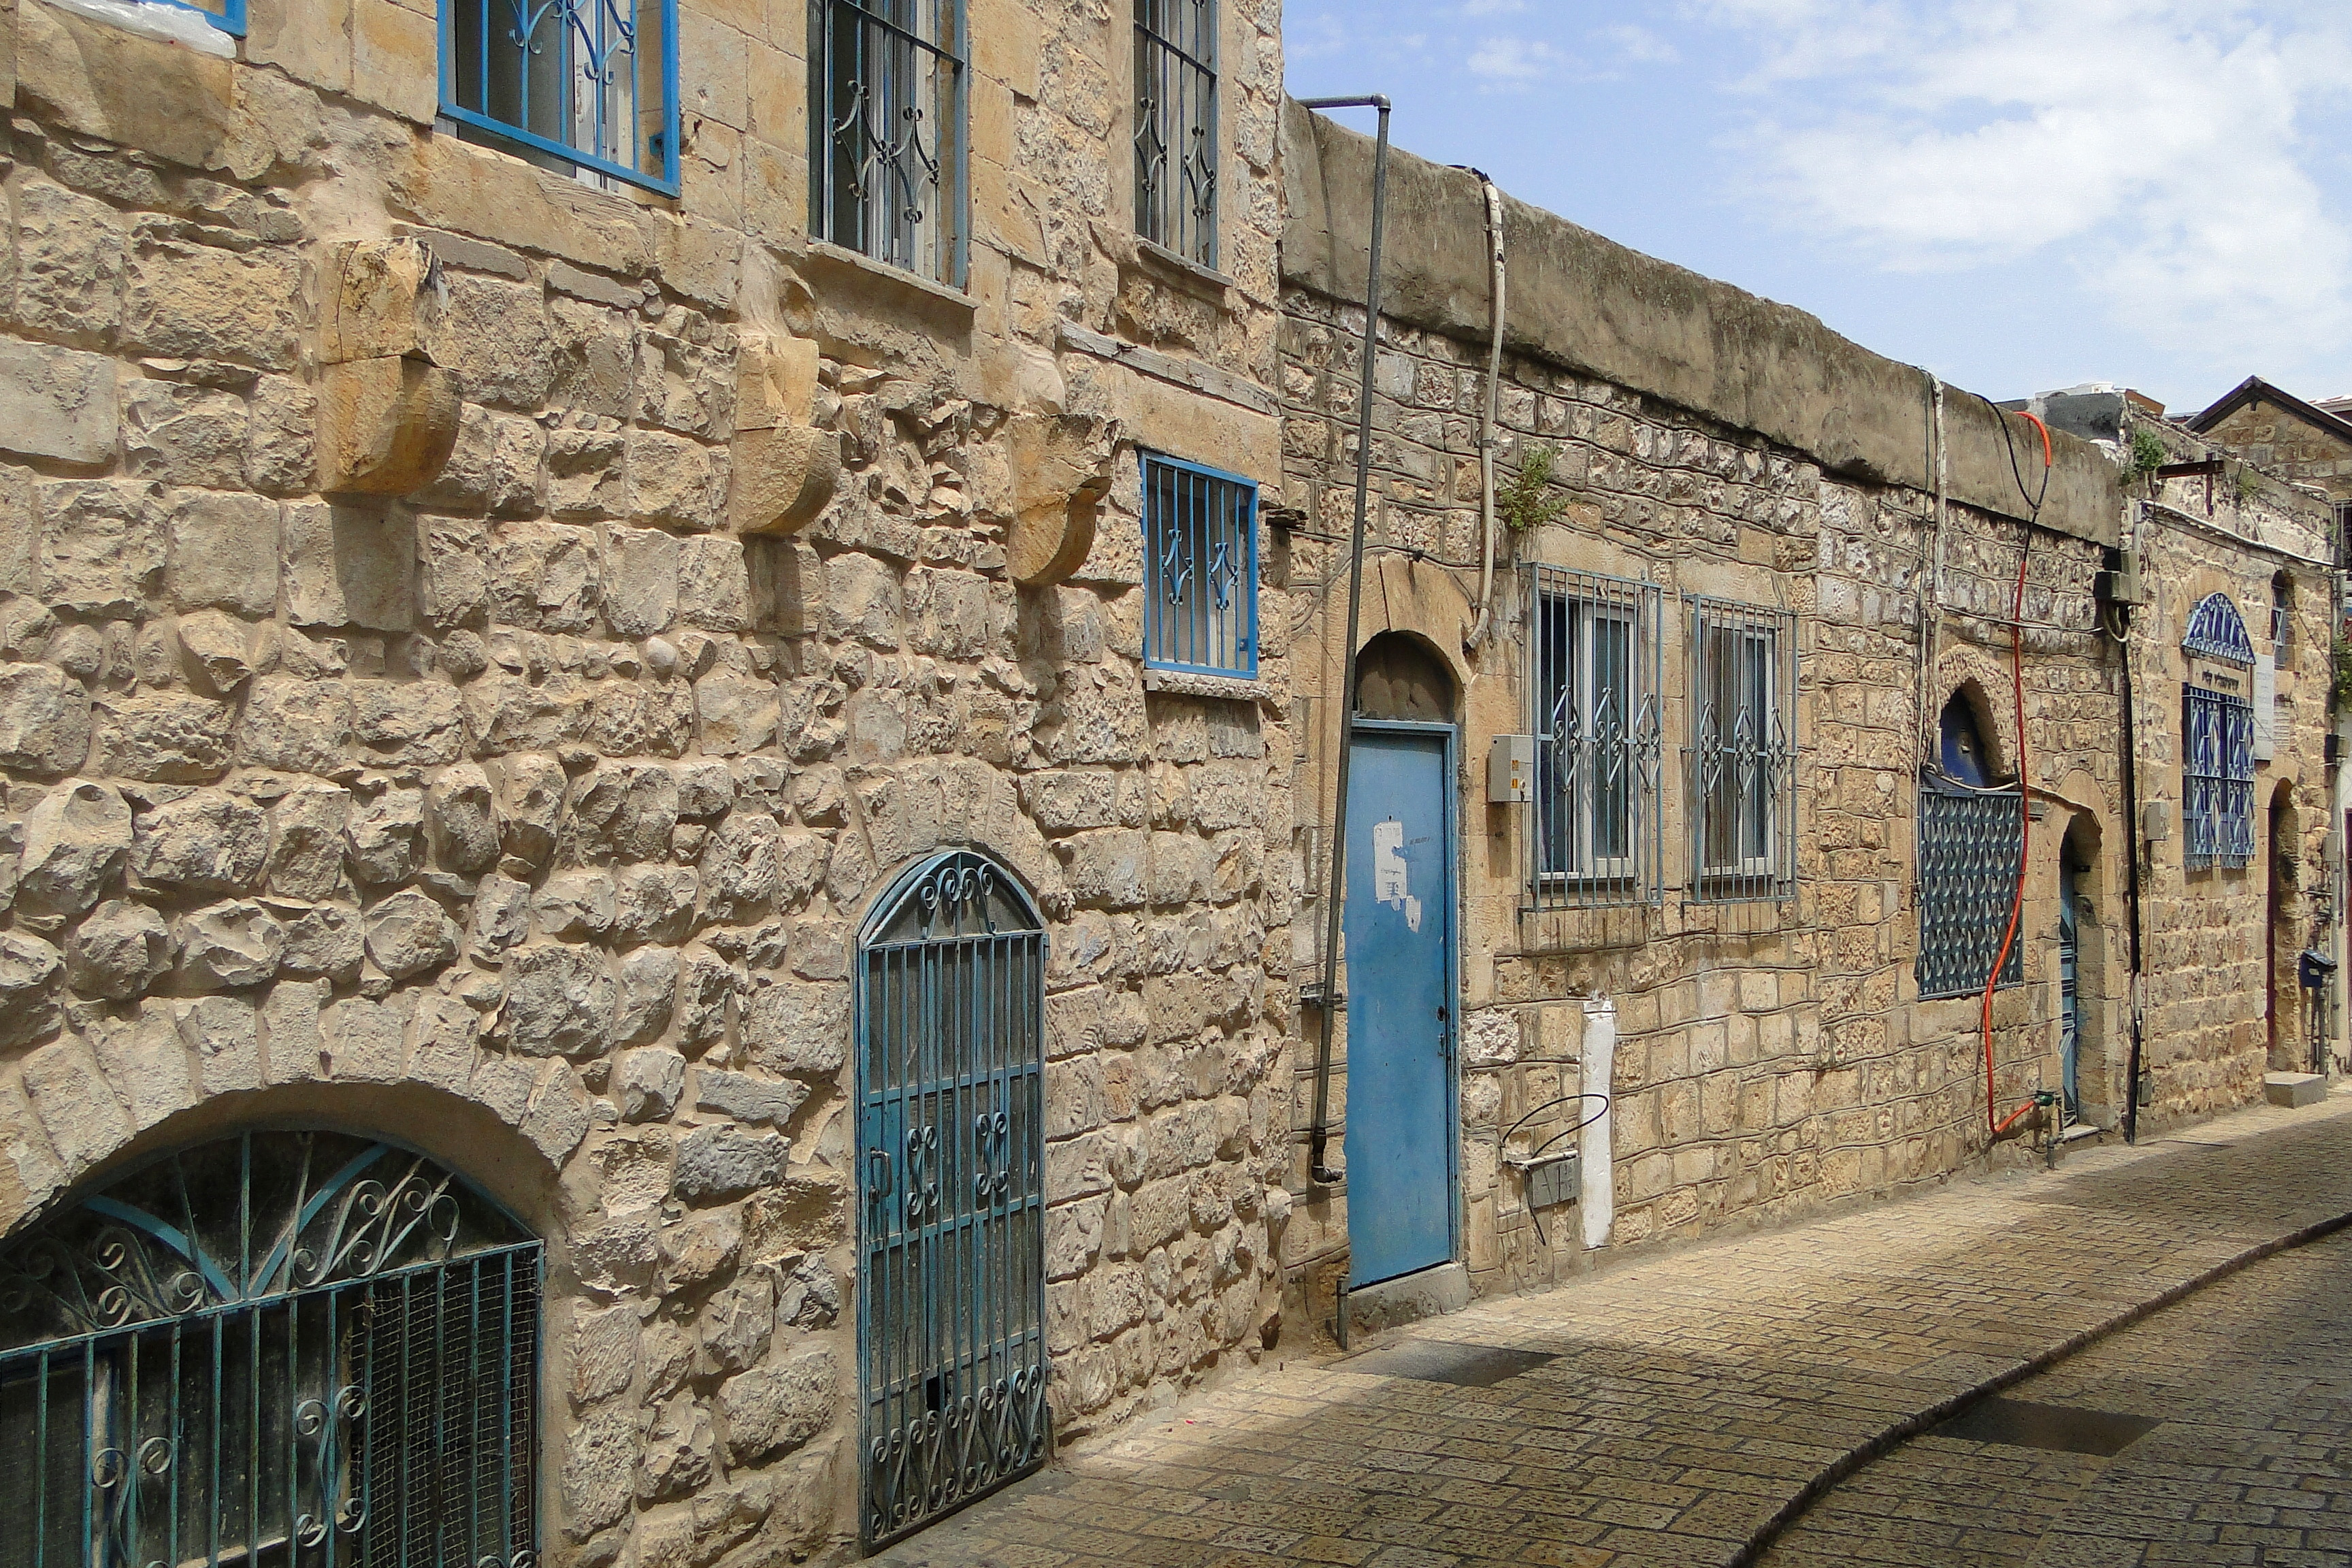 Safed Israel  city photos gallery : ... Architecture Tsfat Safed Galilee Israel 03 5713997600